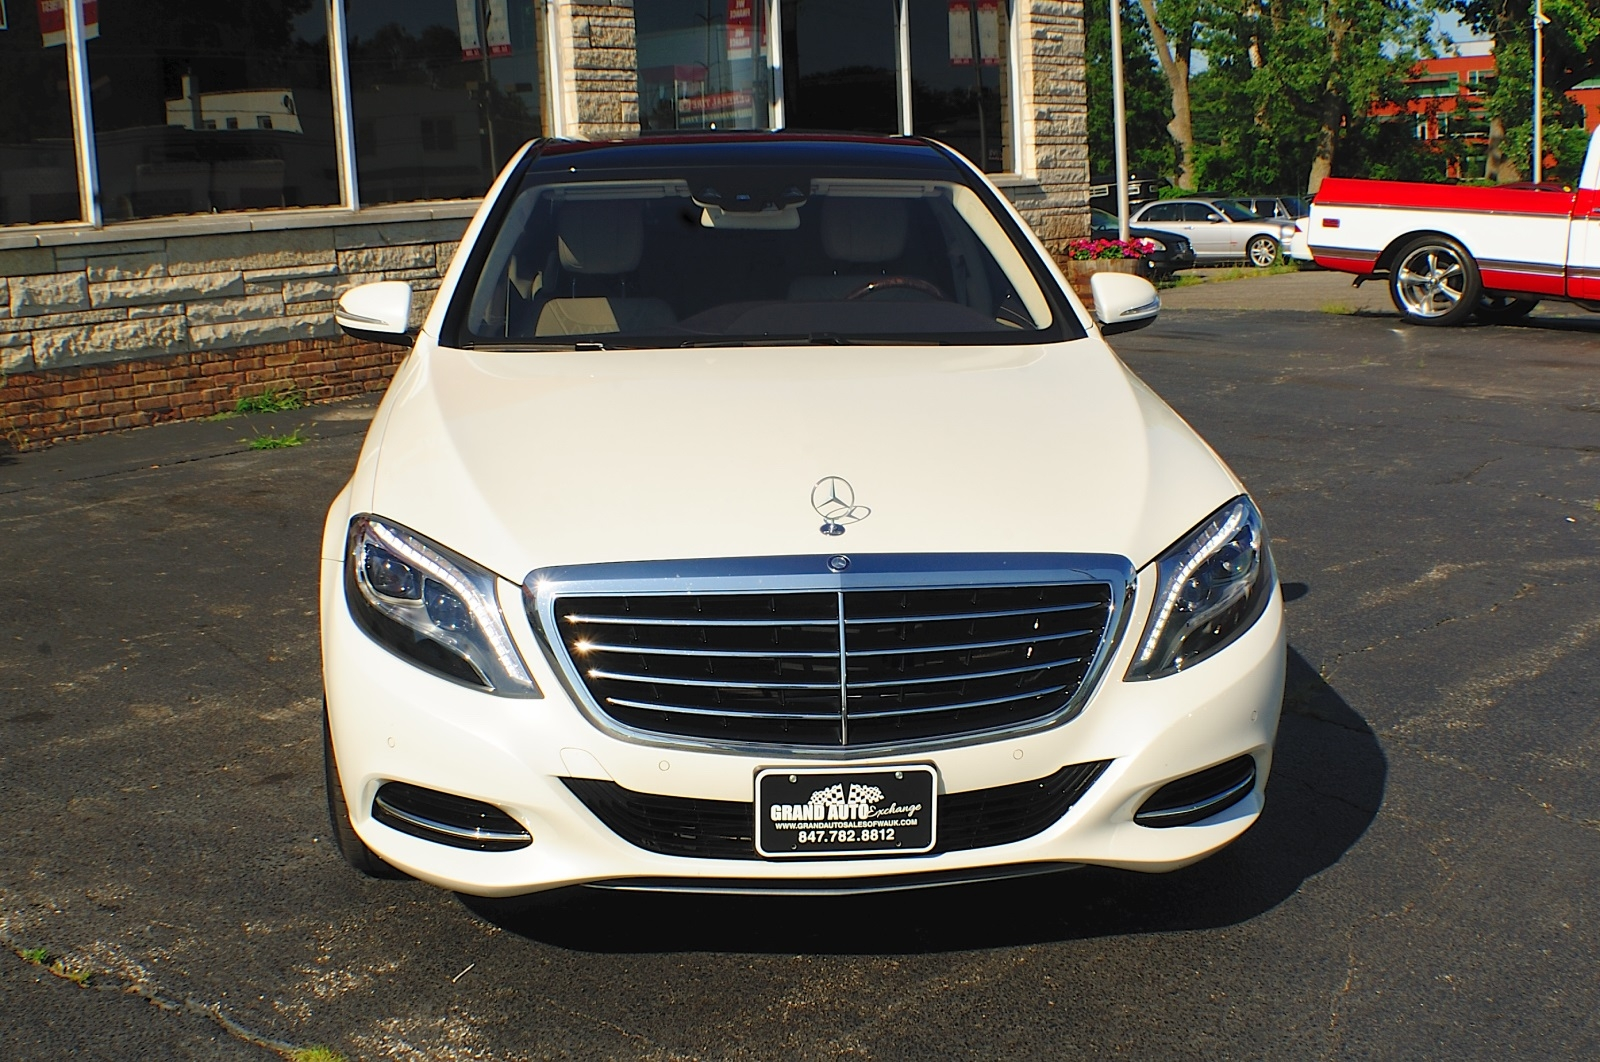 Mercedes benz 2014 s550 white images for 2014 mercedes benz s550 4matic